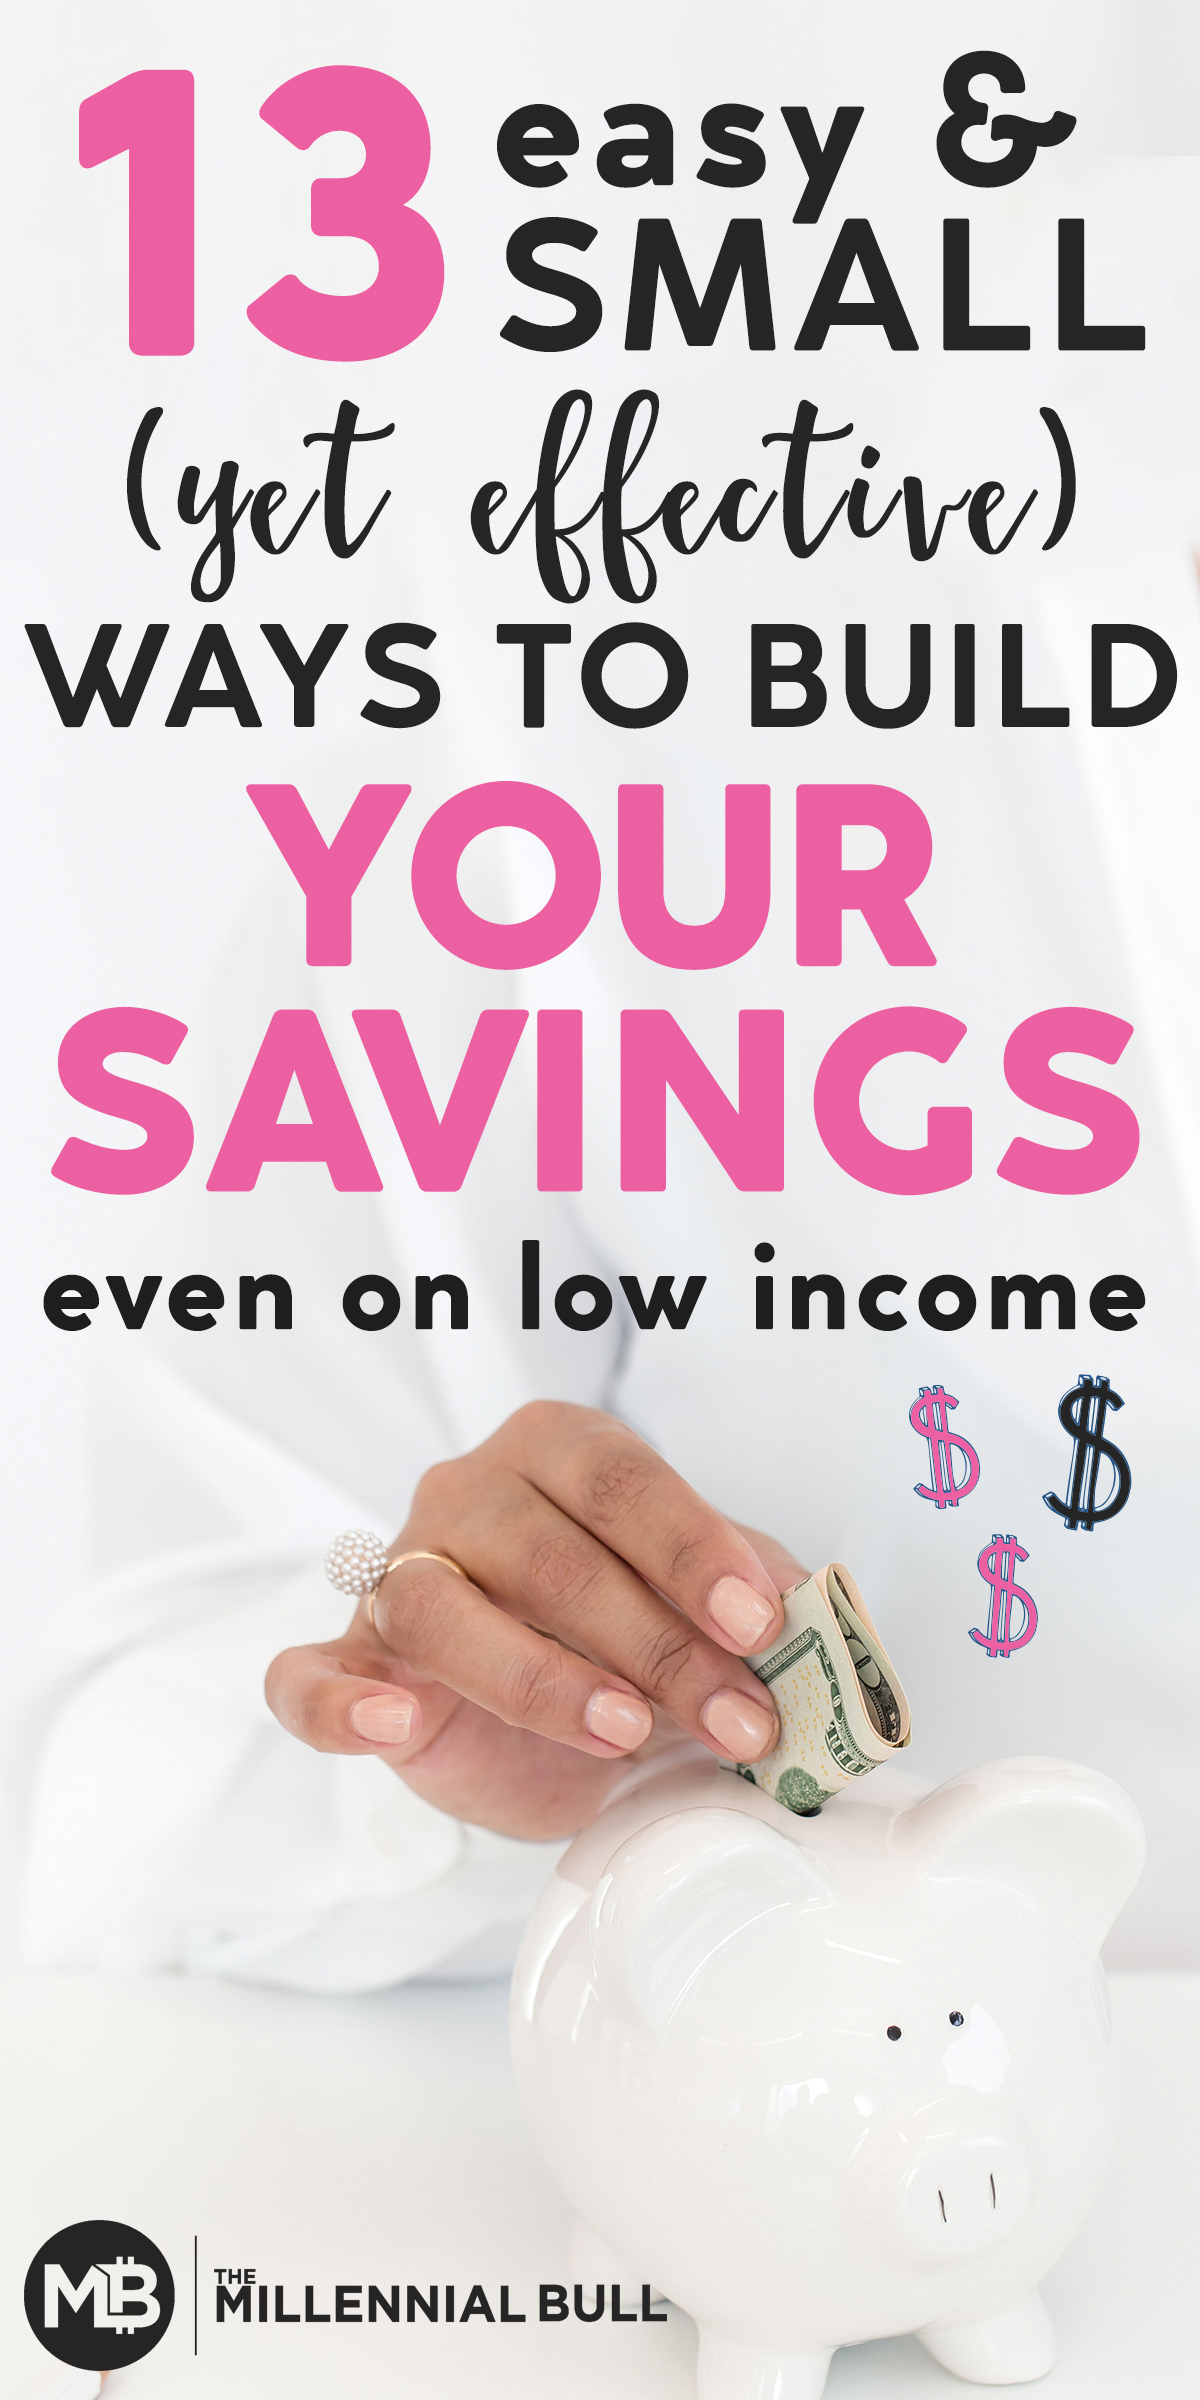 13 easy yet effective ways to build a savings even on a low income. These money saving hacks will help you chip away at your debt and add funds to your savings account with little effort! #savemoney #moneysavinghacks #personalfinance